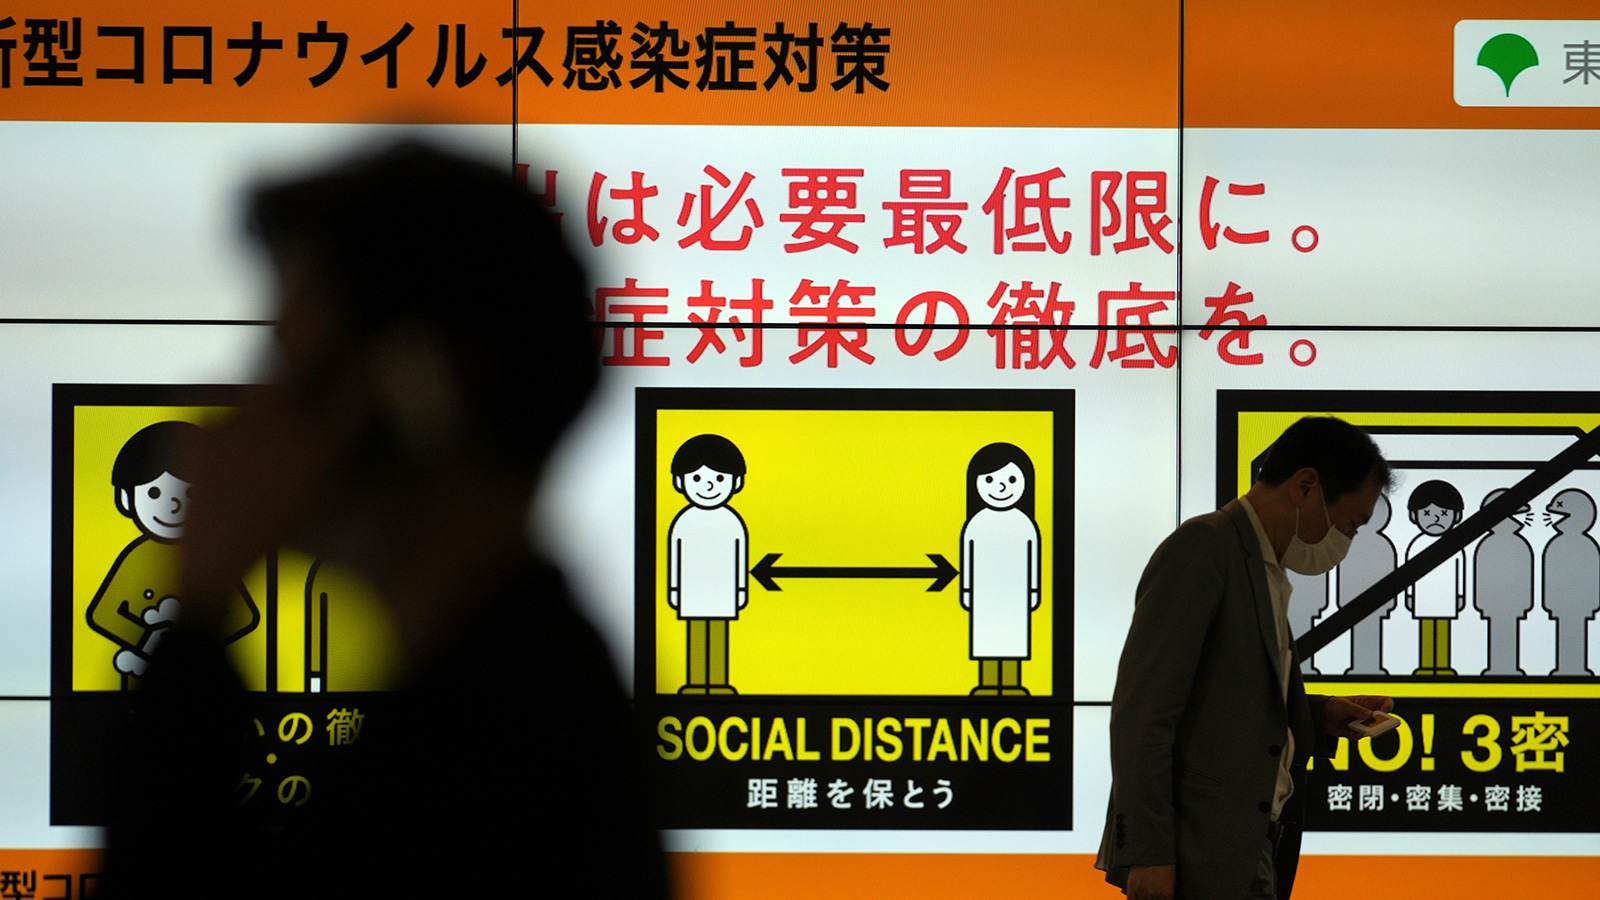 People walk past a public awareness sign for social distancing to help reduce the spread of the coronavirus Tuesday, June 22, in Tokyo.